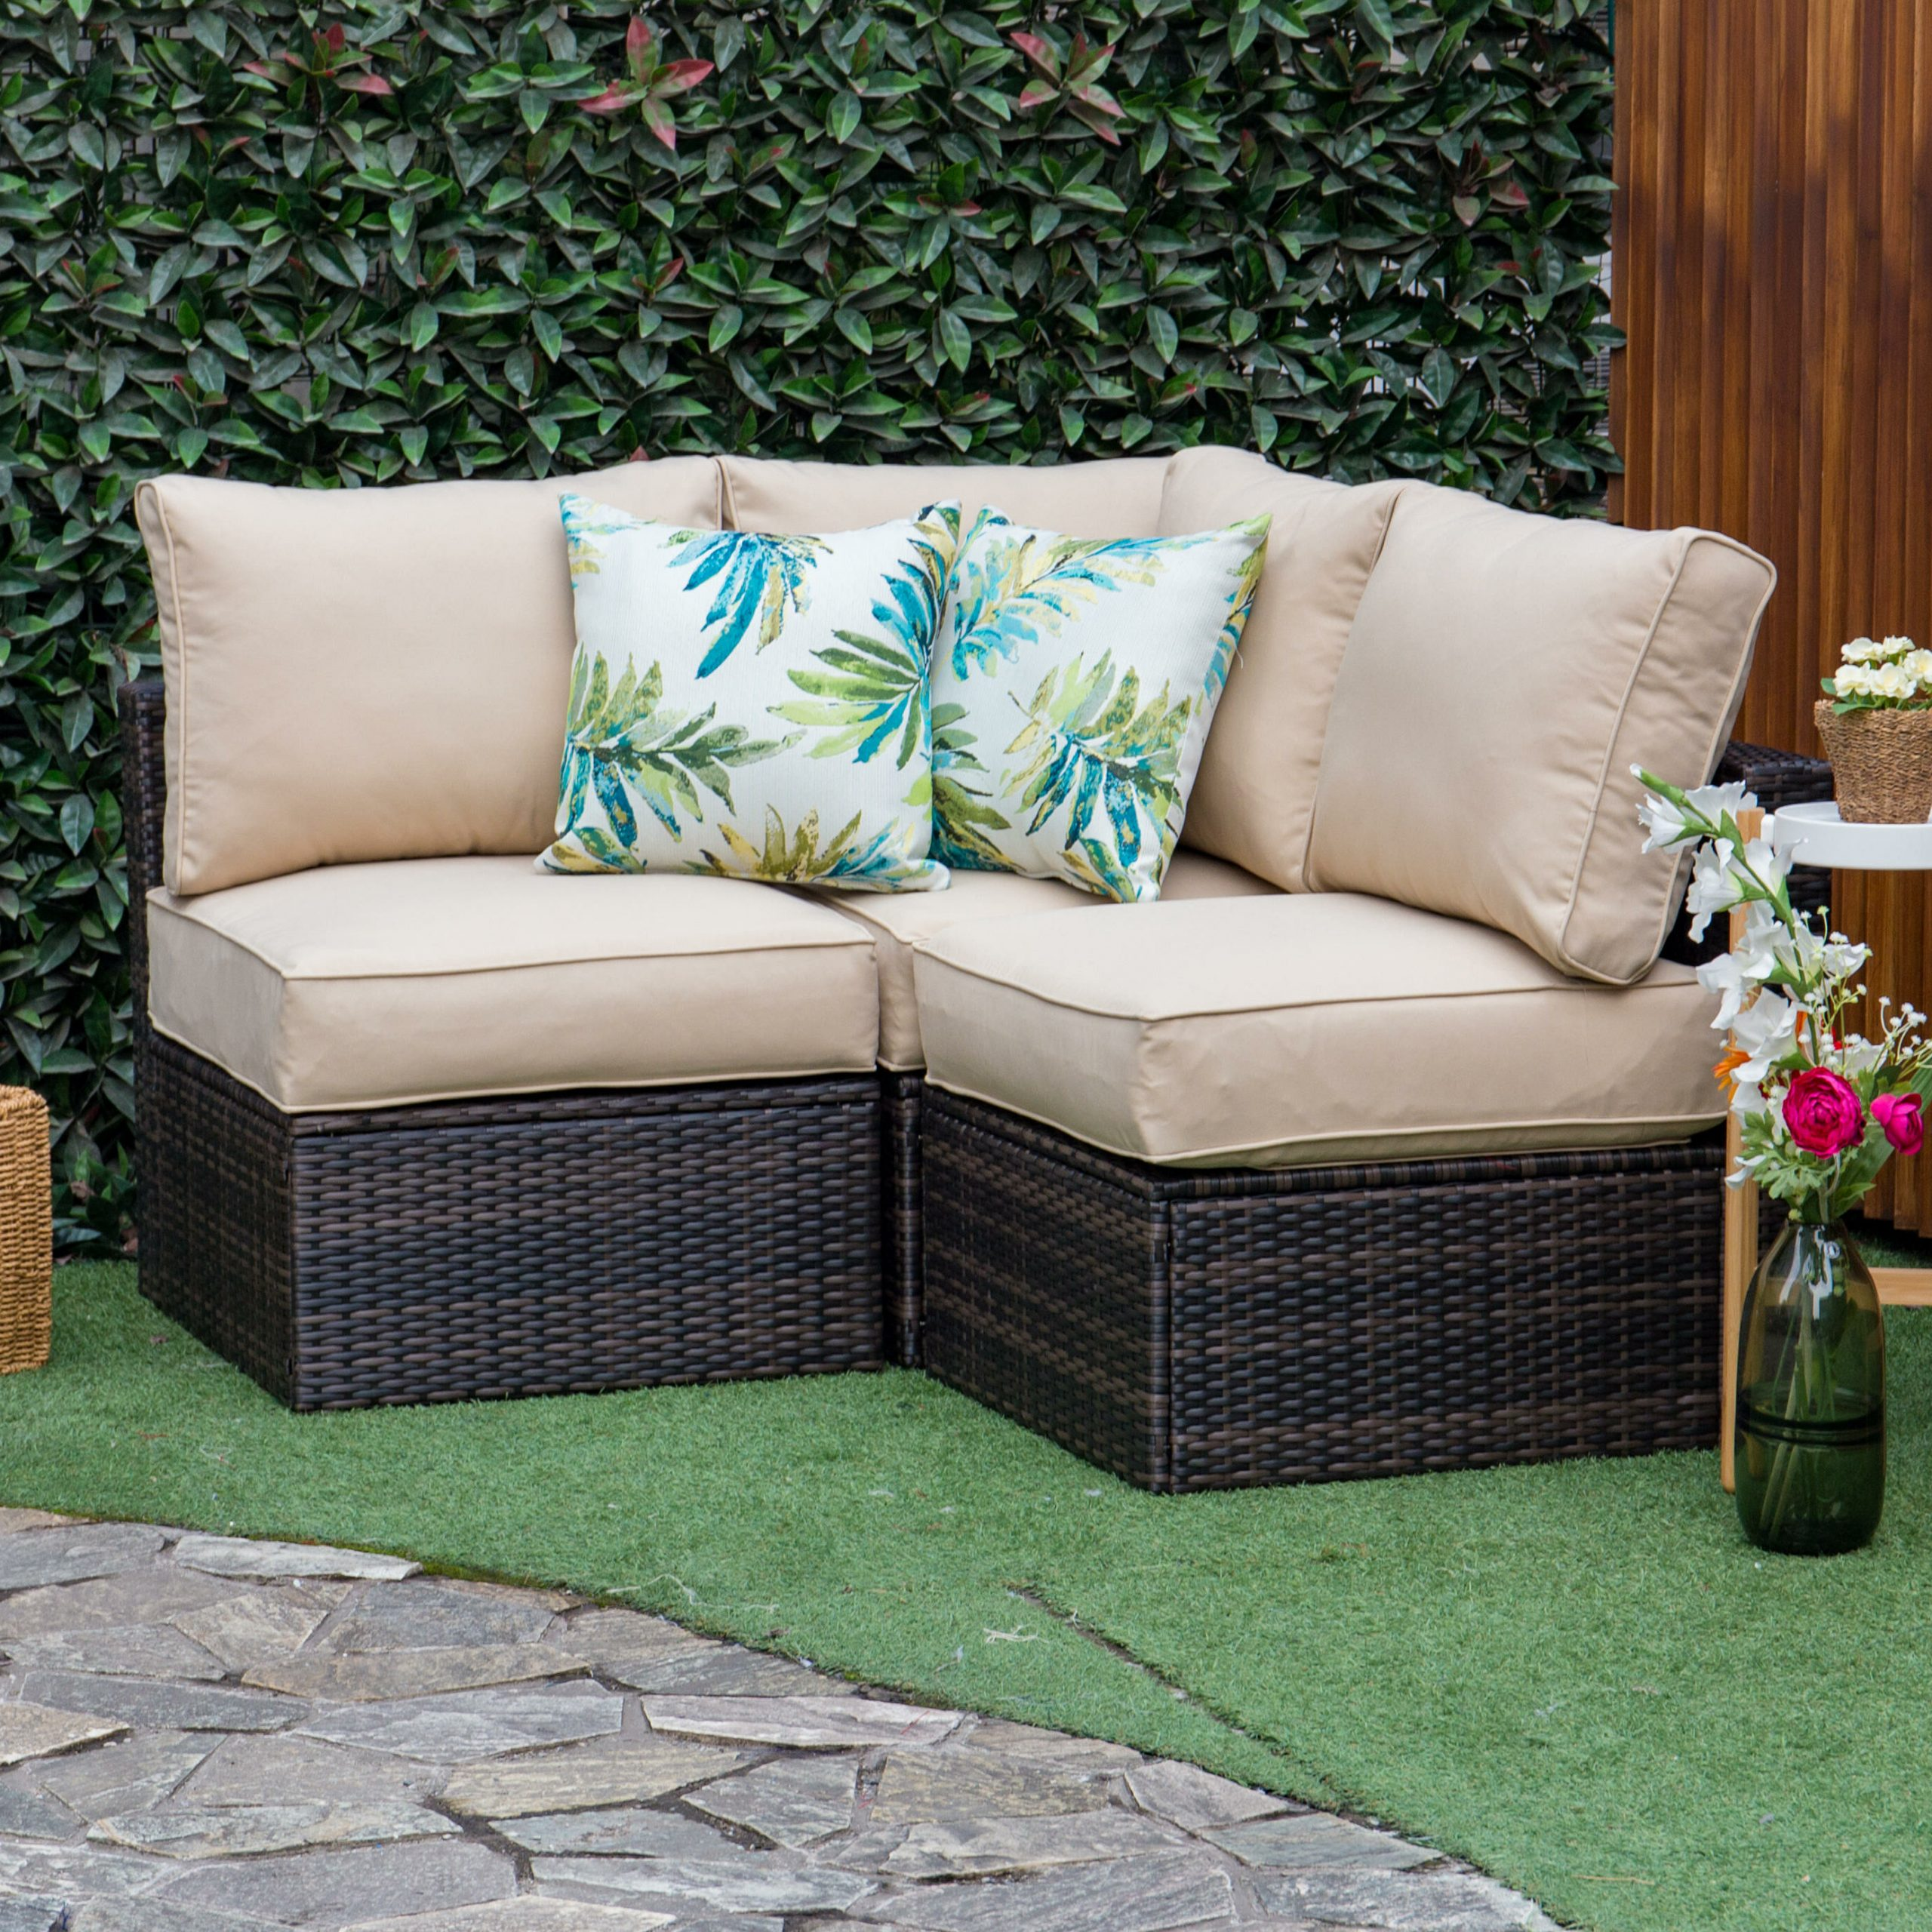 Well Known Boyce Outdoor Patio Sectional With Cushions Inside Burruss Patio Sectionals With Cushions (View 18 of 25)